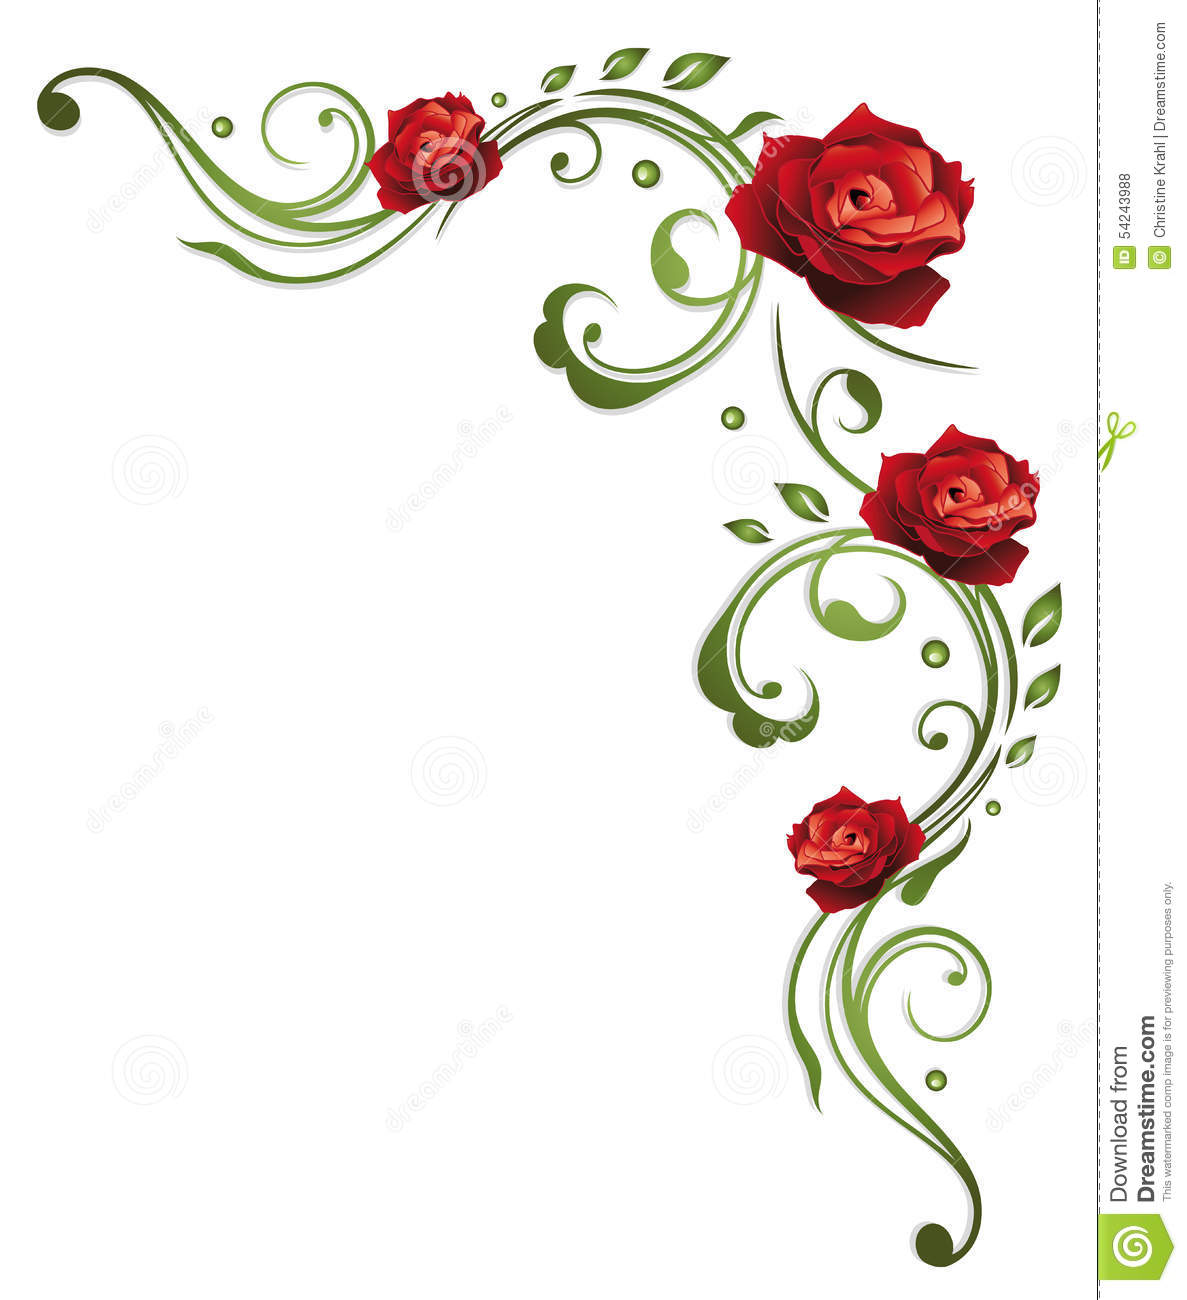 Rose, Leaves Stock Vector - Image: 54243988